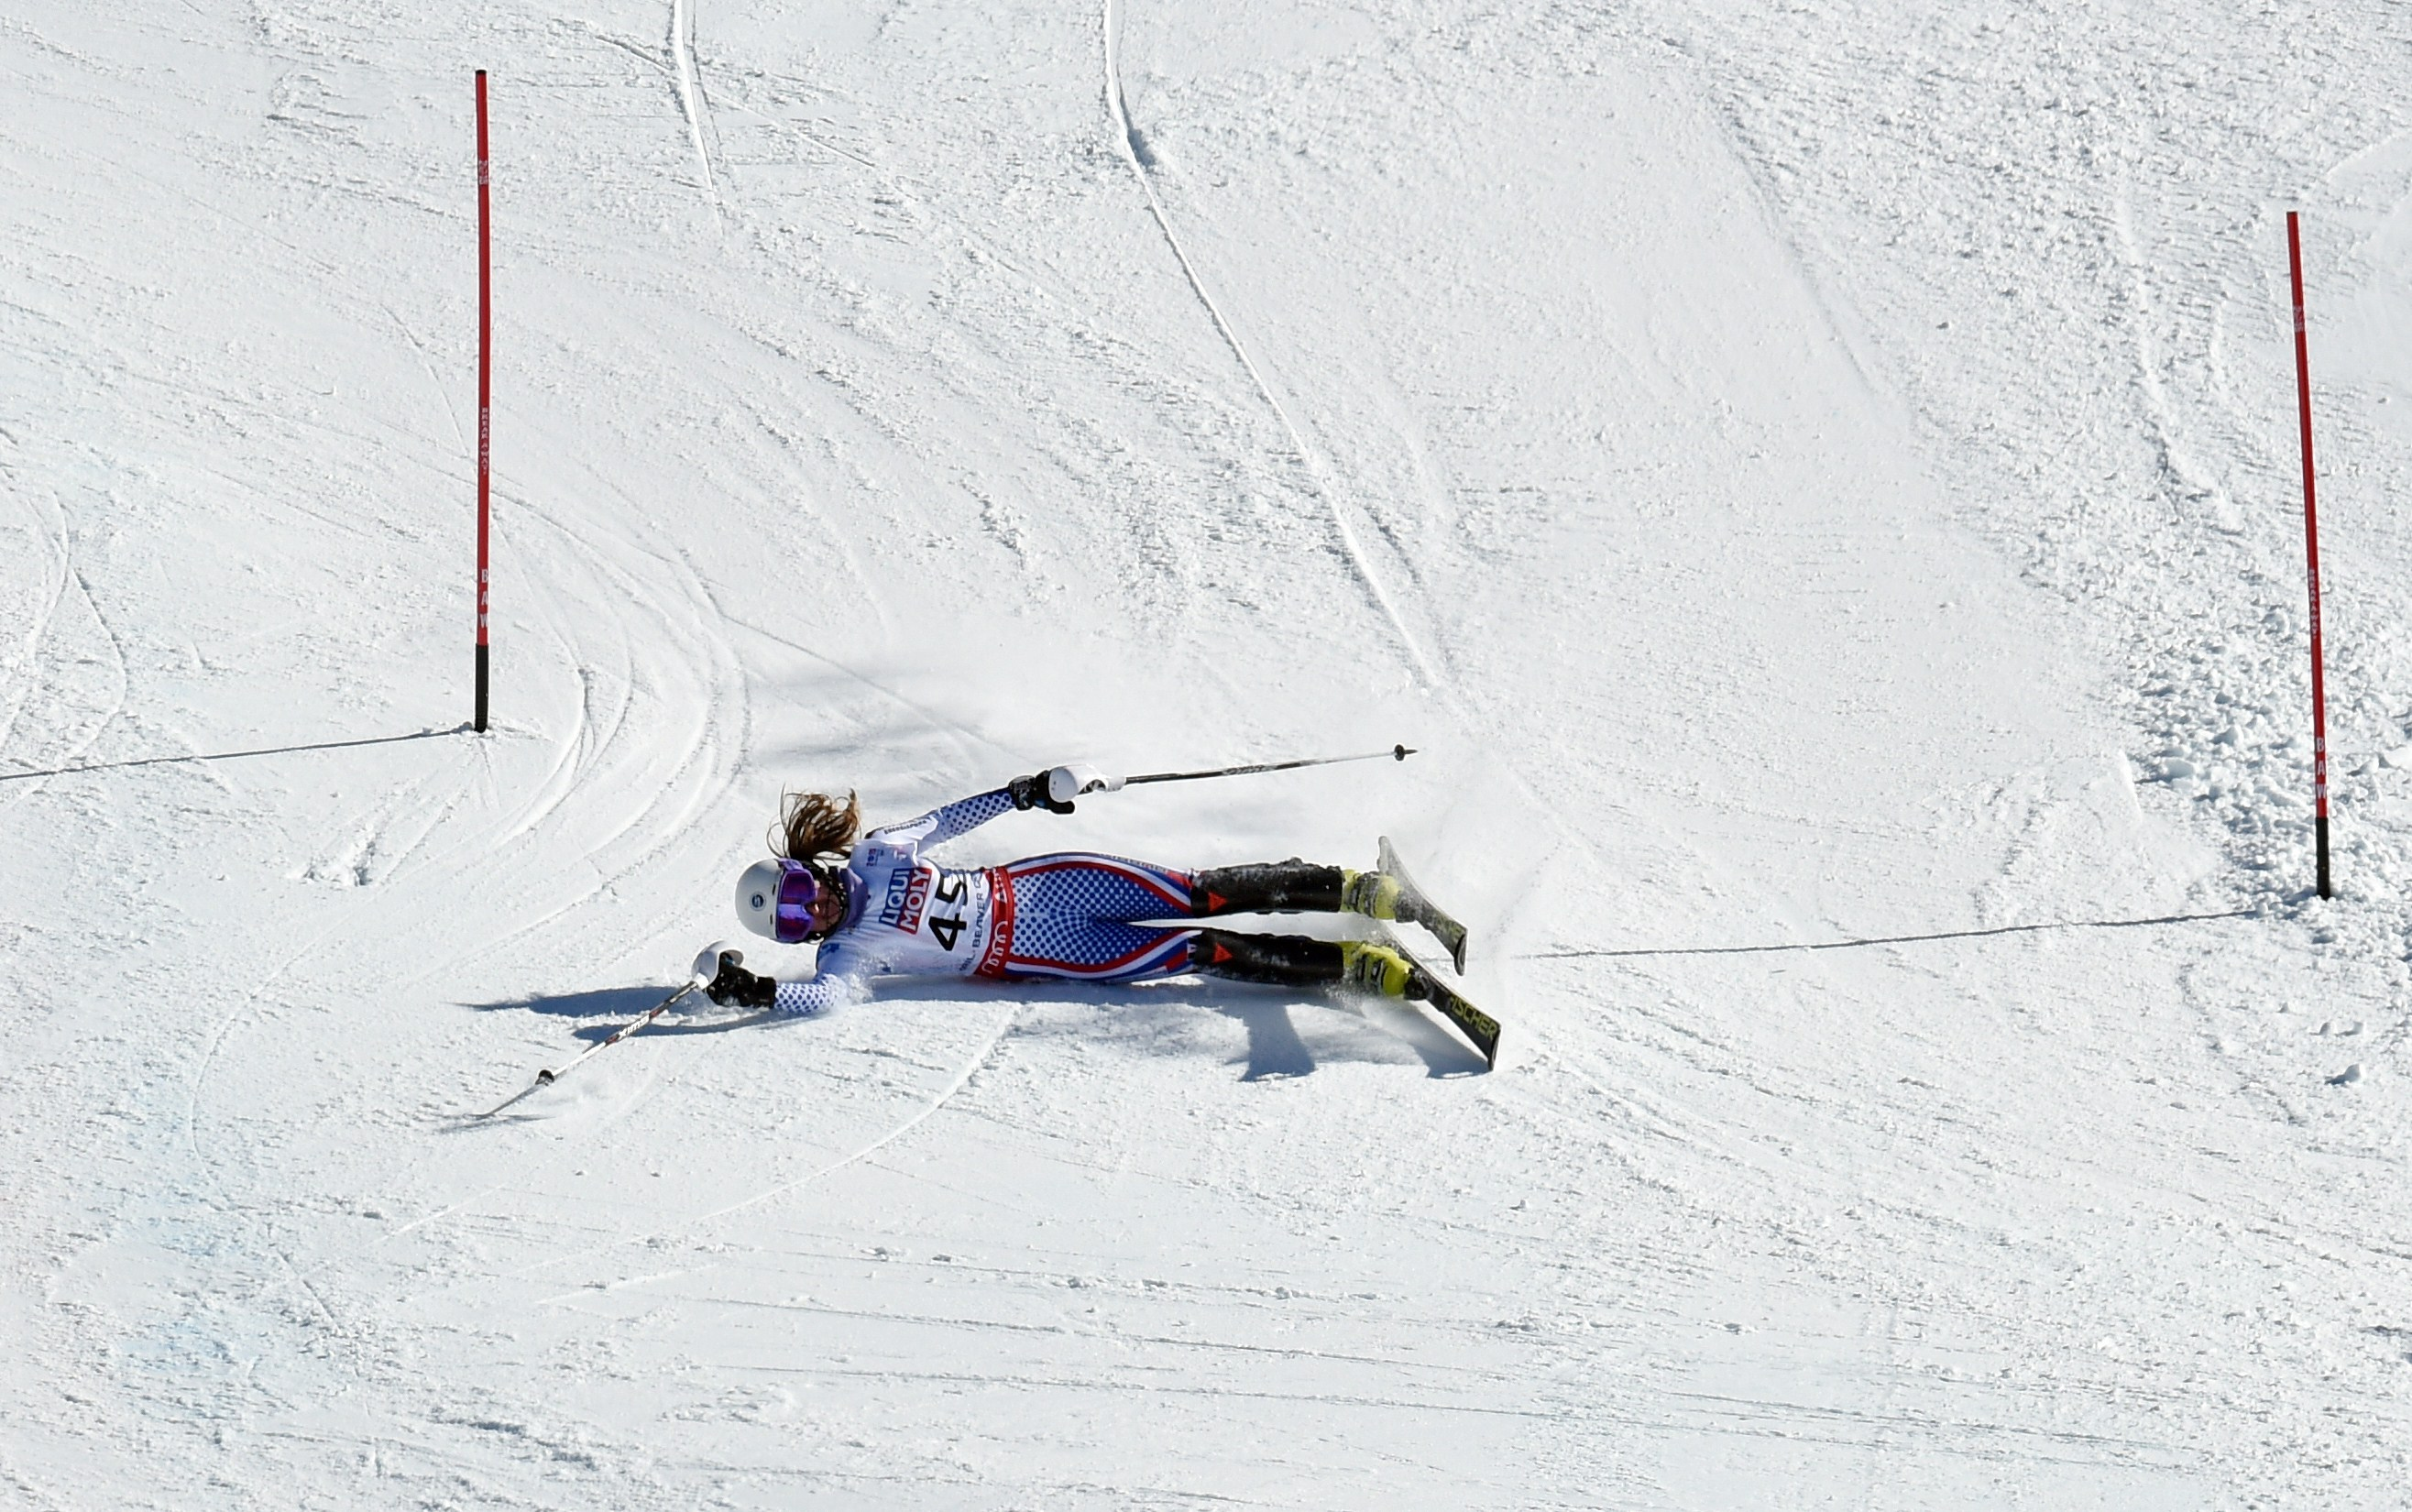 Ksenia Alopina of Russia misses a gate in her second run during the 2015 World Alpine Ski Championships women's slalom February 14, 2015 in Beaver Creek, Colorado. (credit: DON EMMERT/AFP/Getty Images)